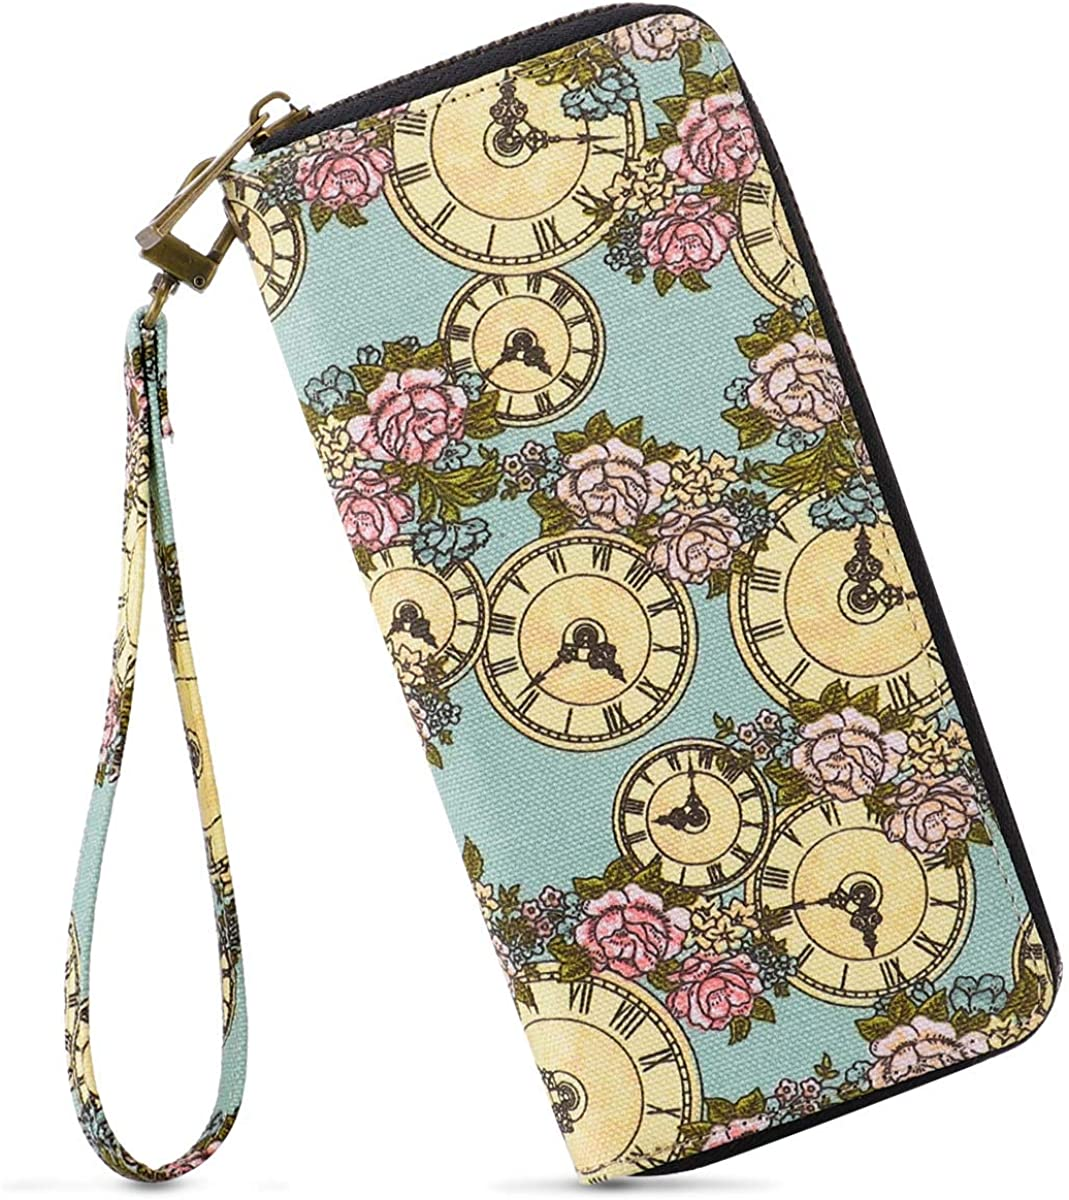 Womens Long Clutch Wallet Purse Credit Card Wallets to Organize Your Cash,Bank Card and Phone with Removable Wristlet Strap